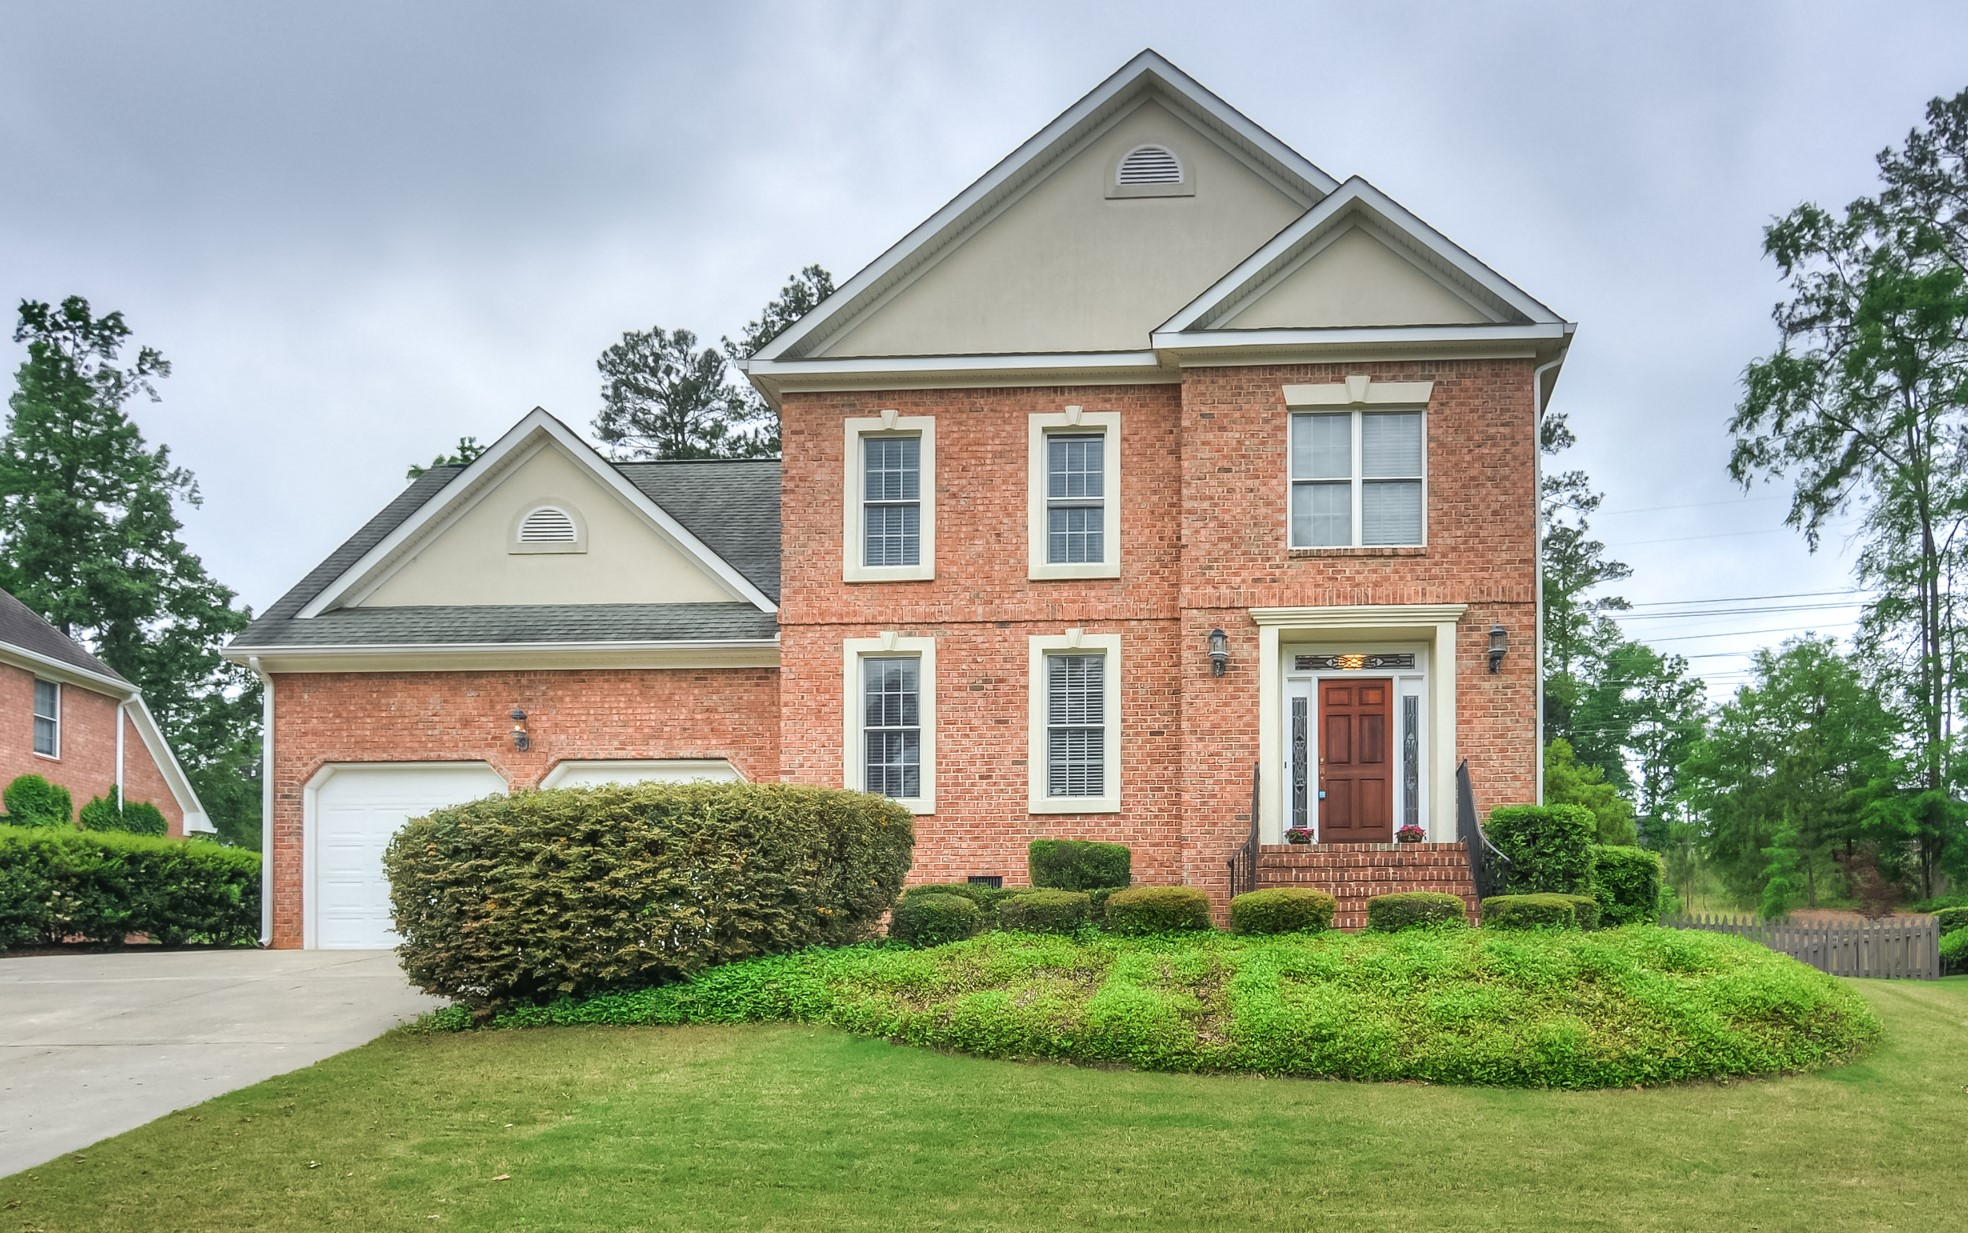 2 Story Brick Home In Riverwood Plantation